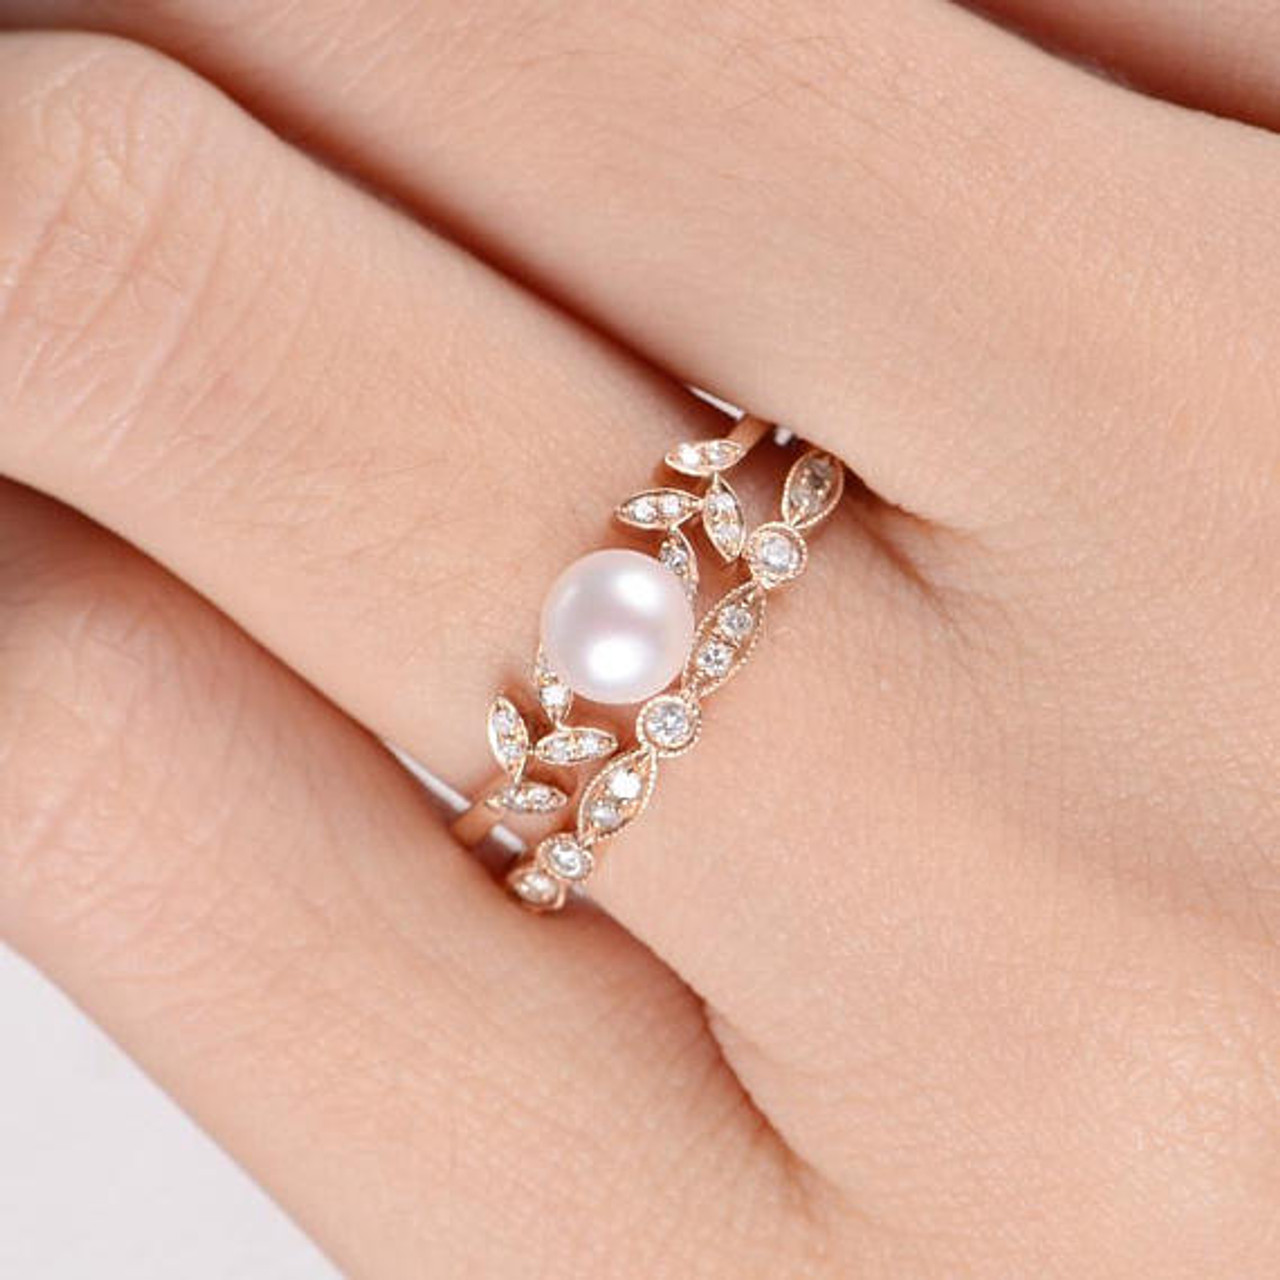 for mywedding of jewellery every pearl rings boutique five paris bride gold engagement kind gorgeous ring hotel